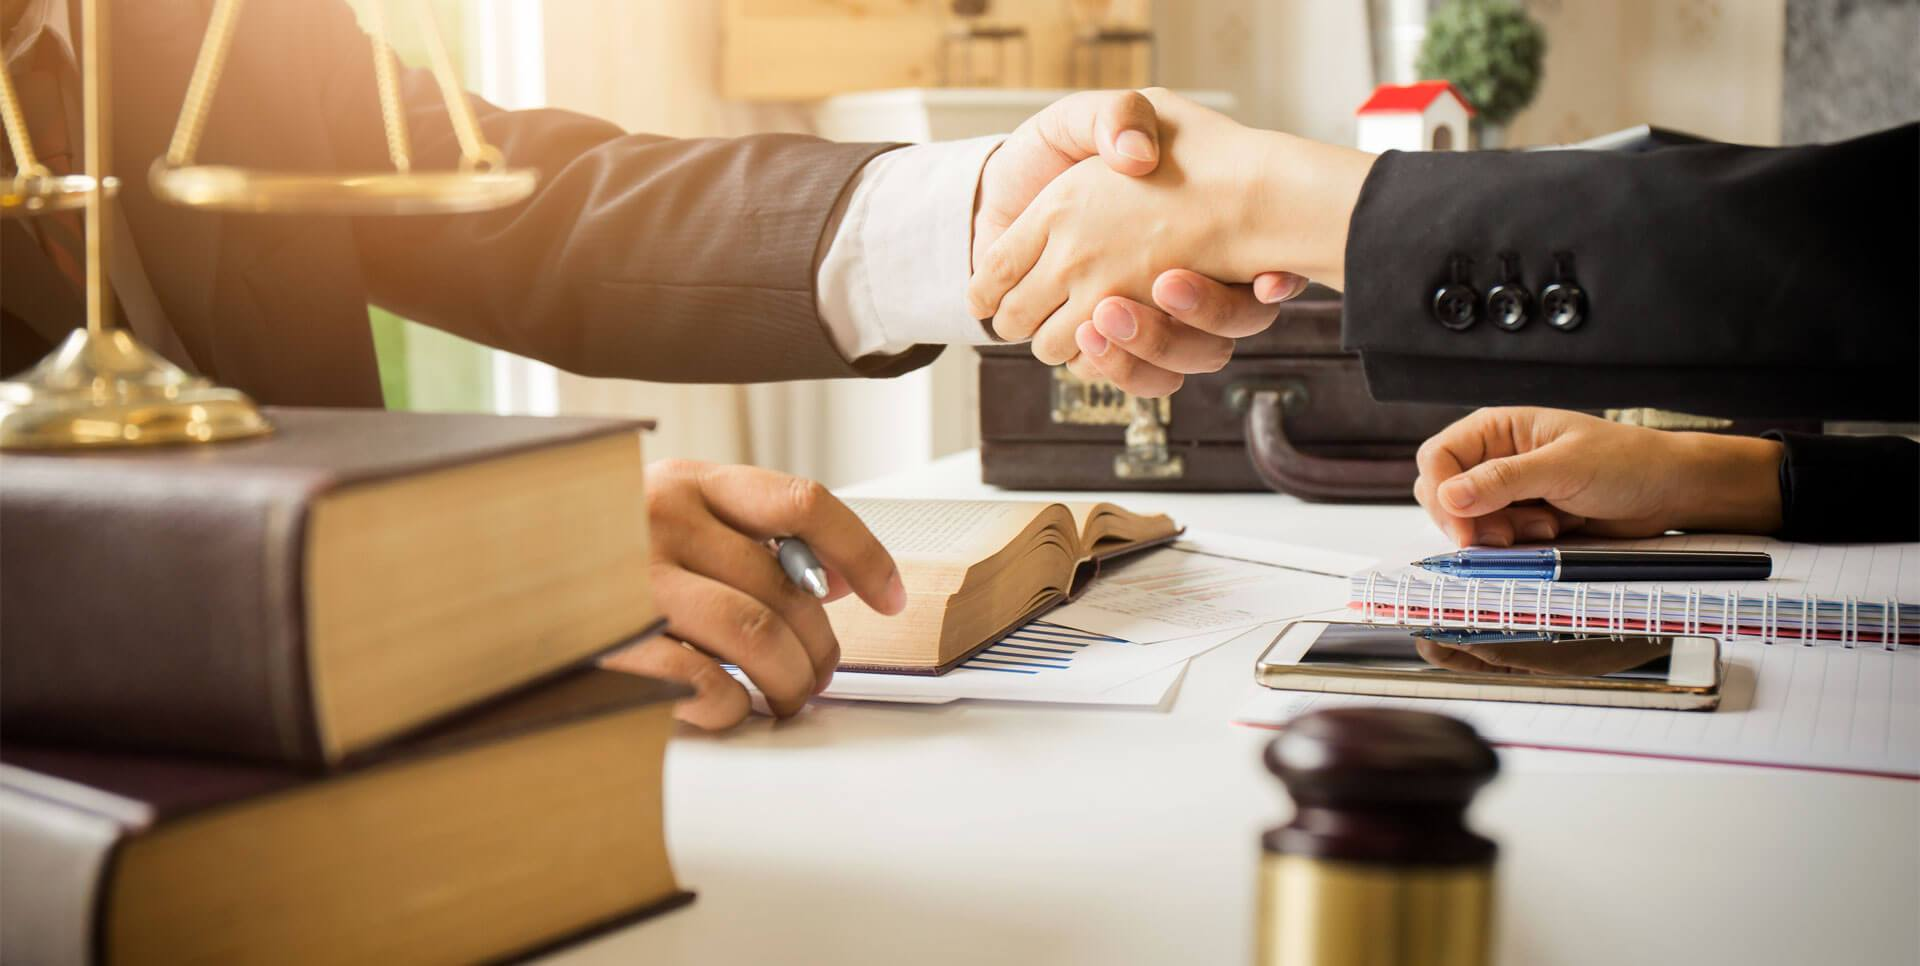 EXPERIENCED ATTORNEYS FOR ANY OF YOUR BUSINESS LEGAL NEEDS